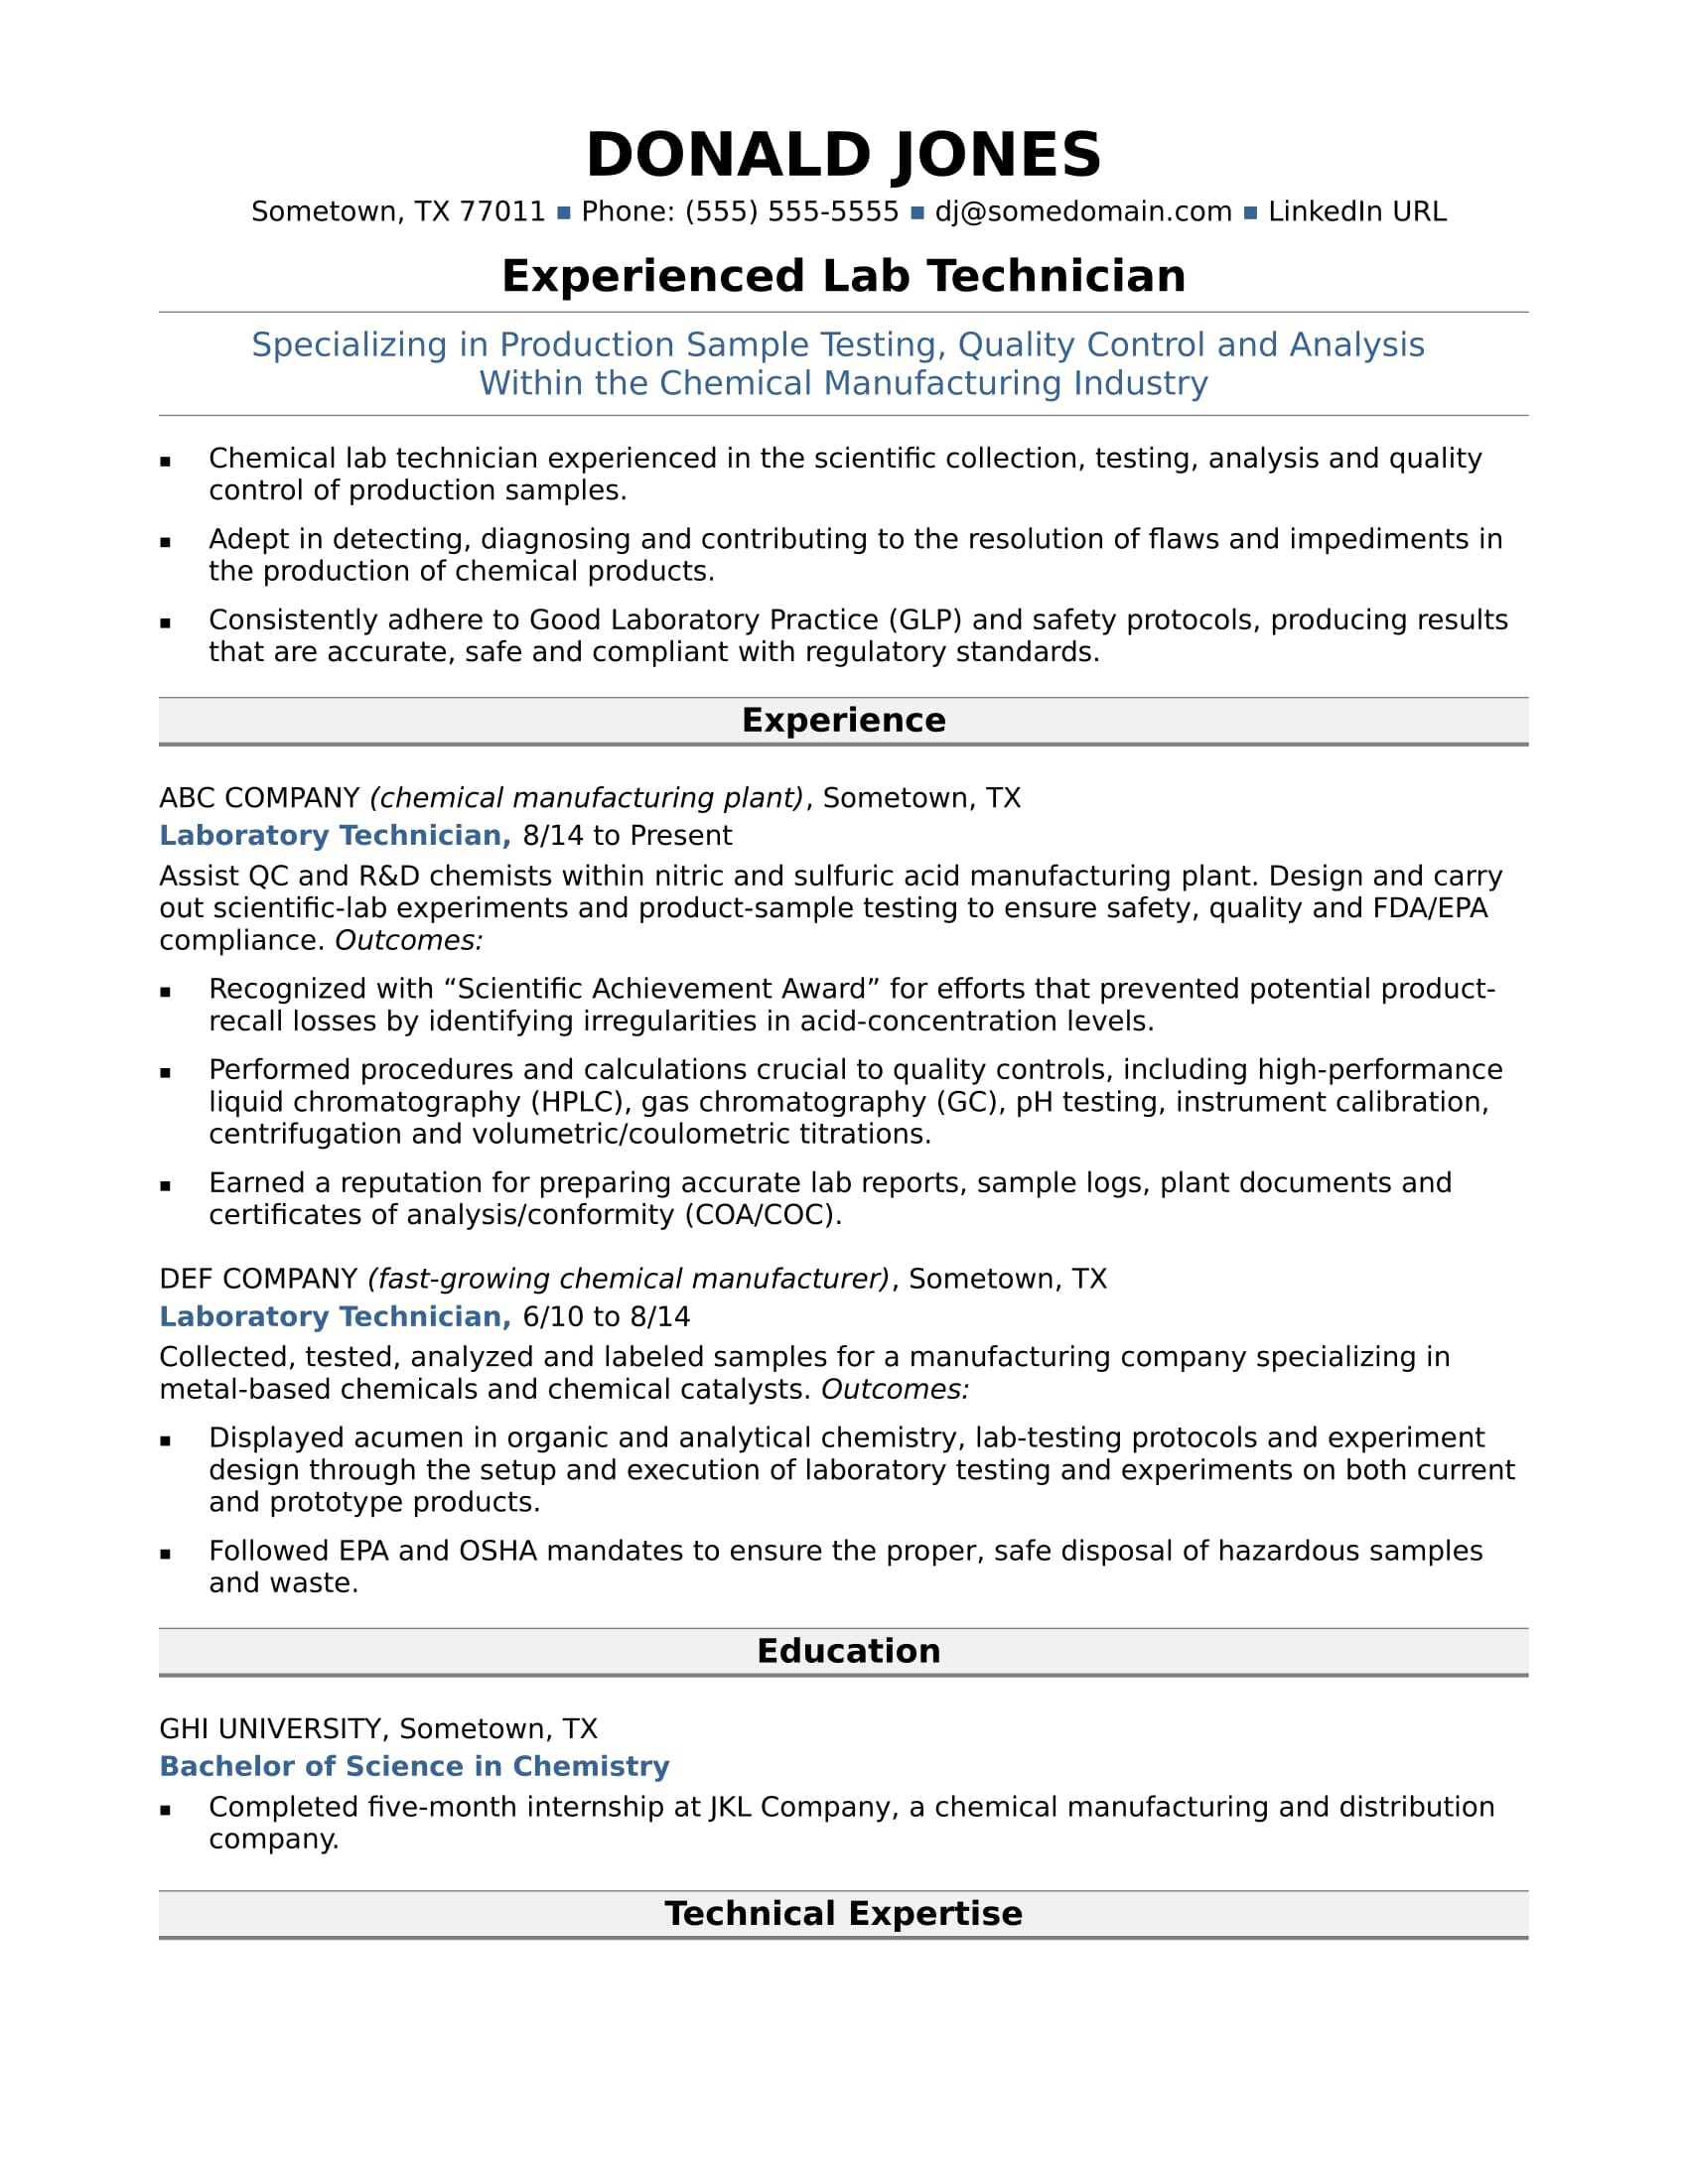 midlevel lab technician resume sample